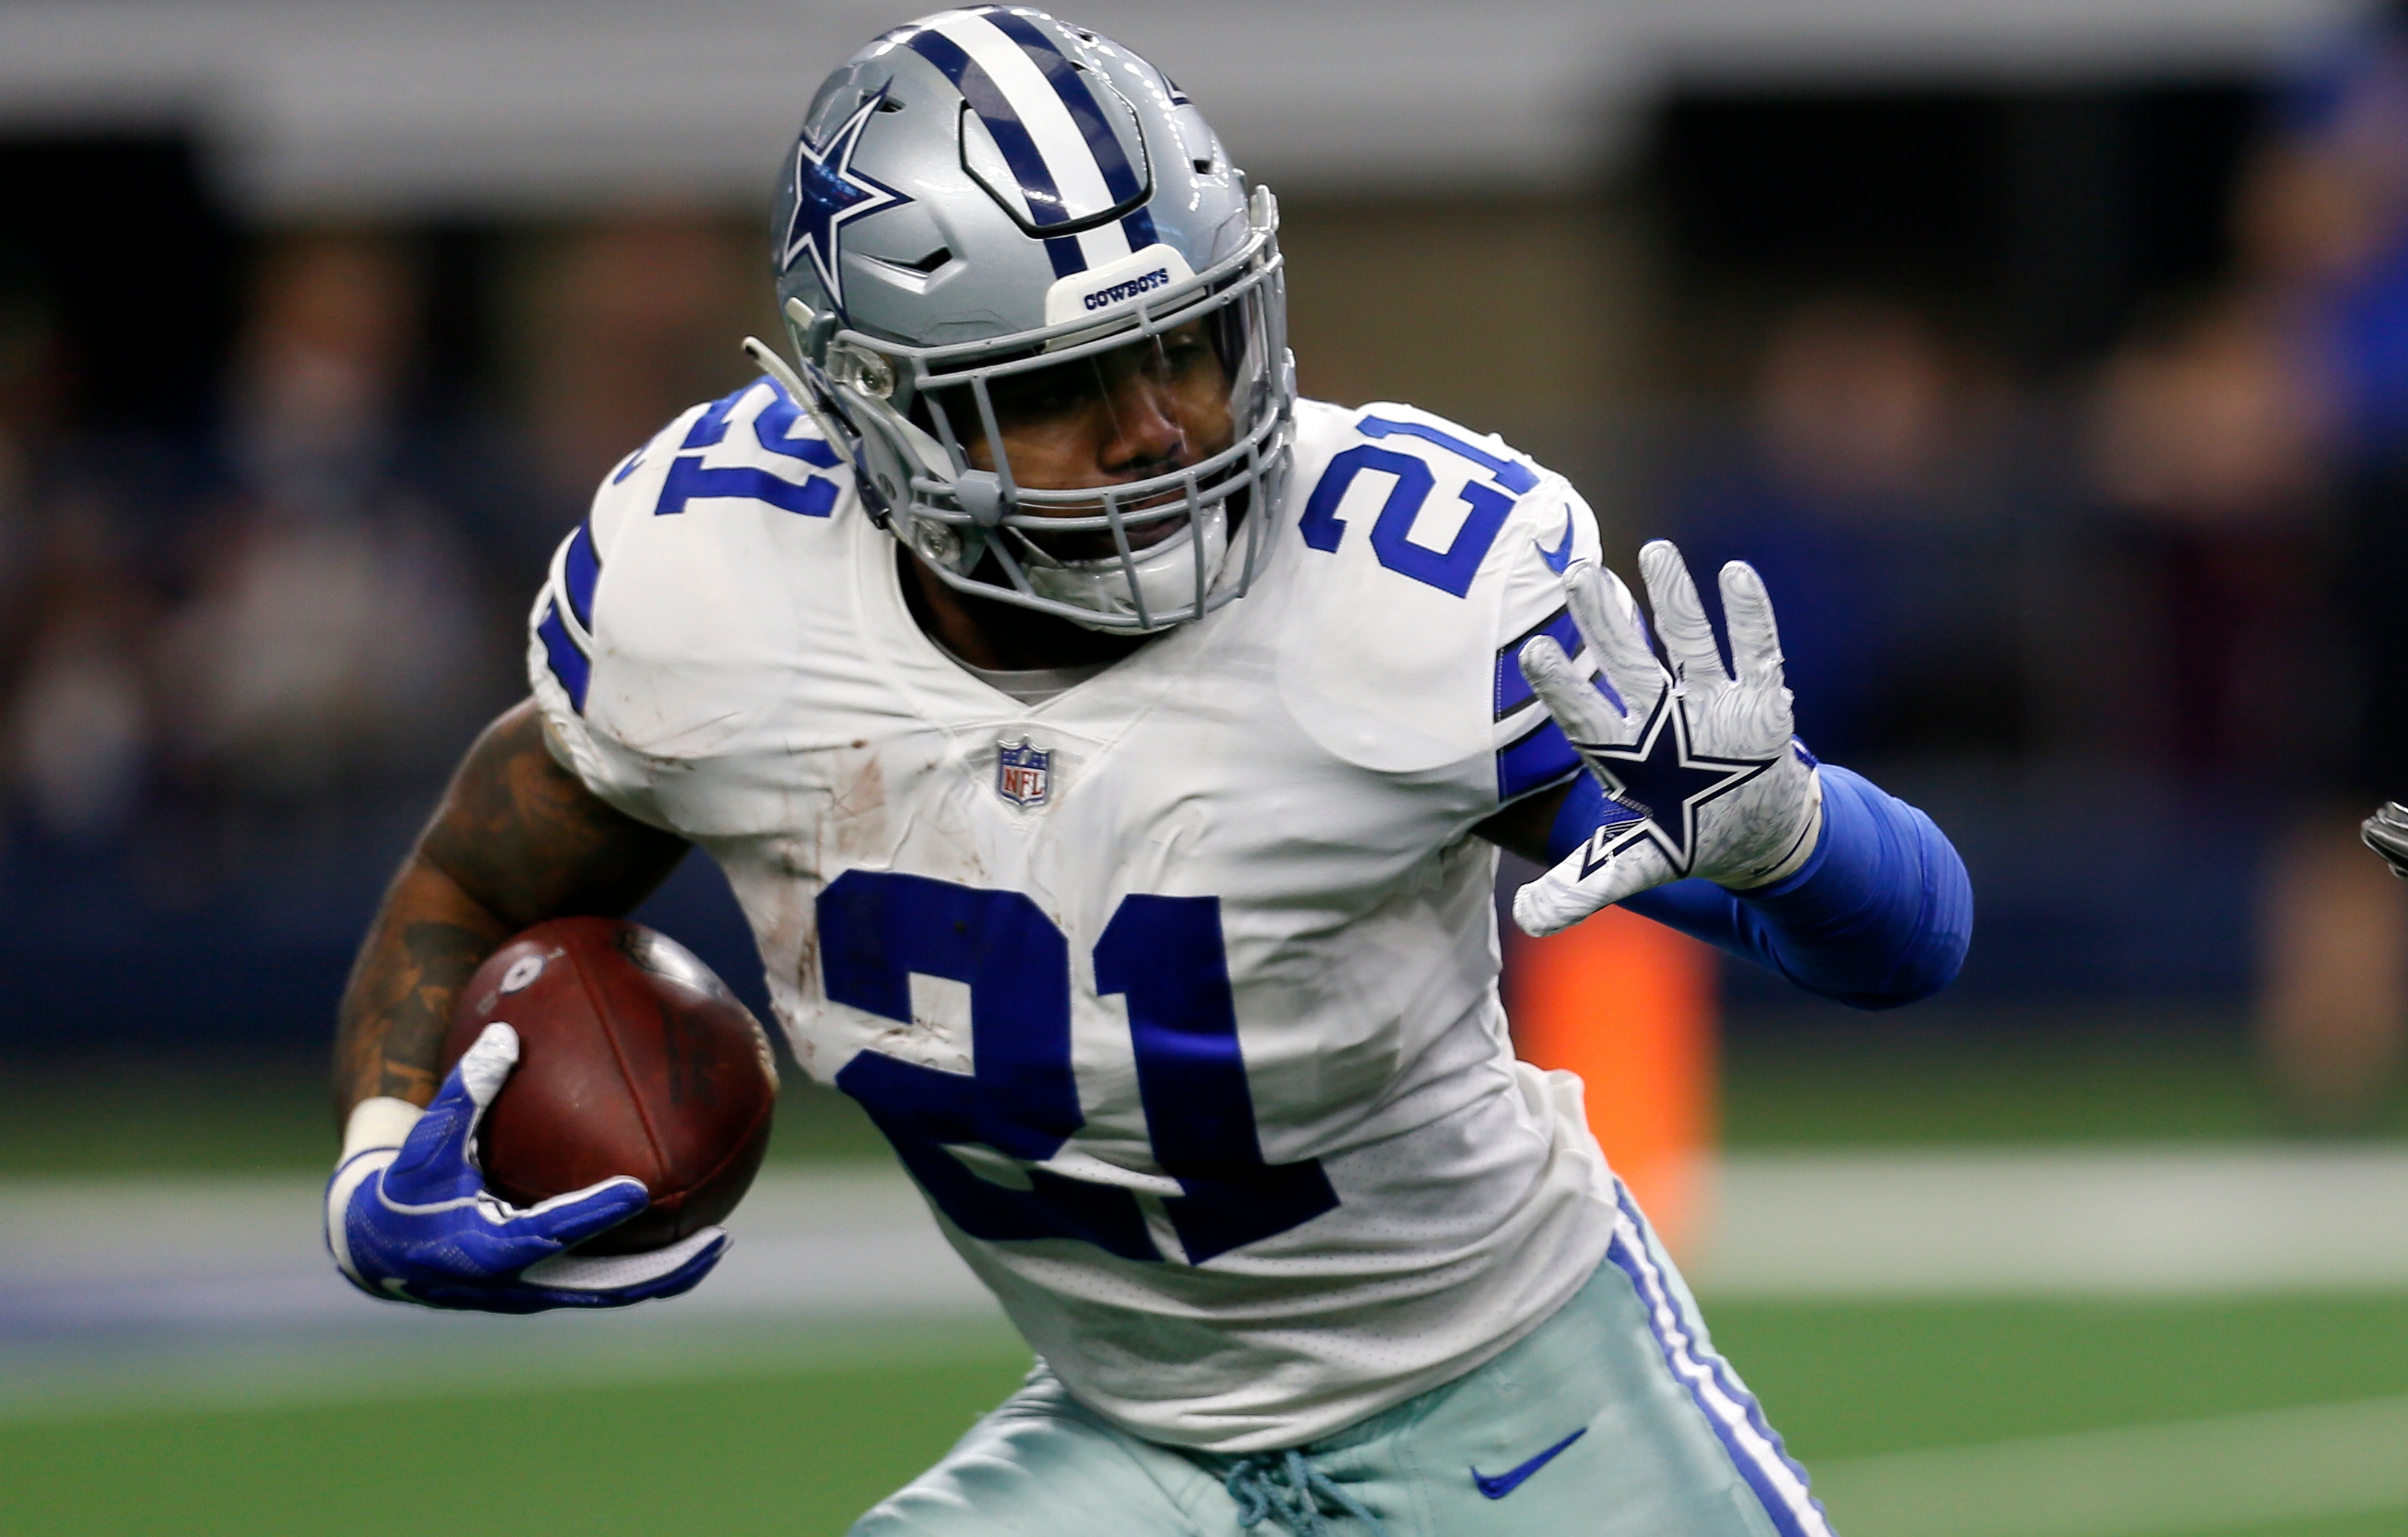 NFL trade rumors: Cowboys' Ezekiel Elliott to Colts?